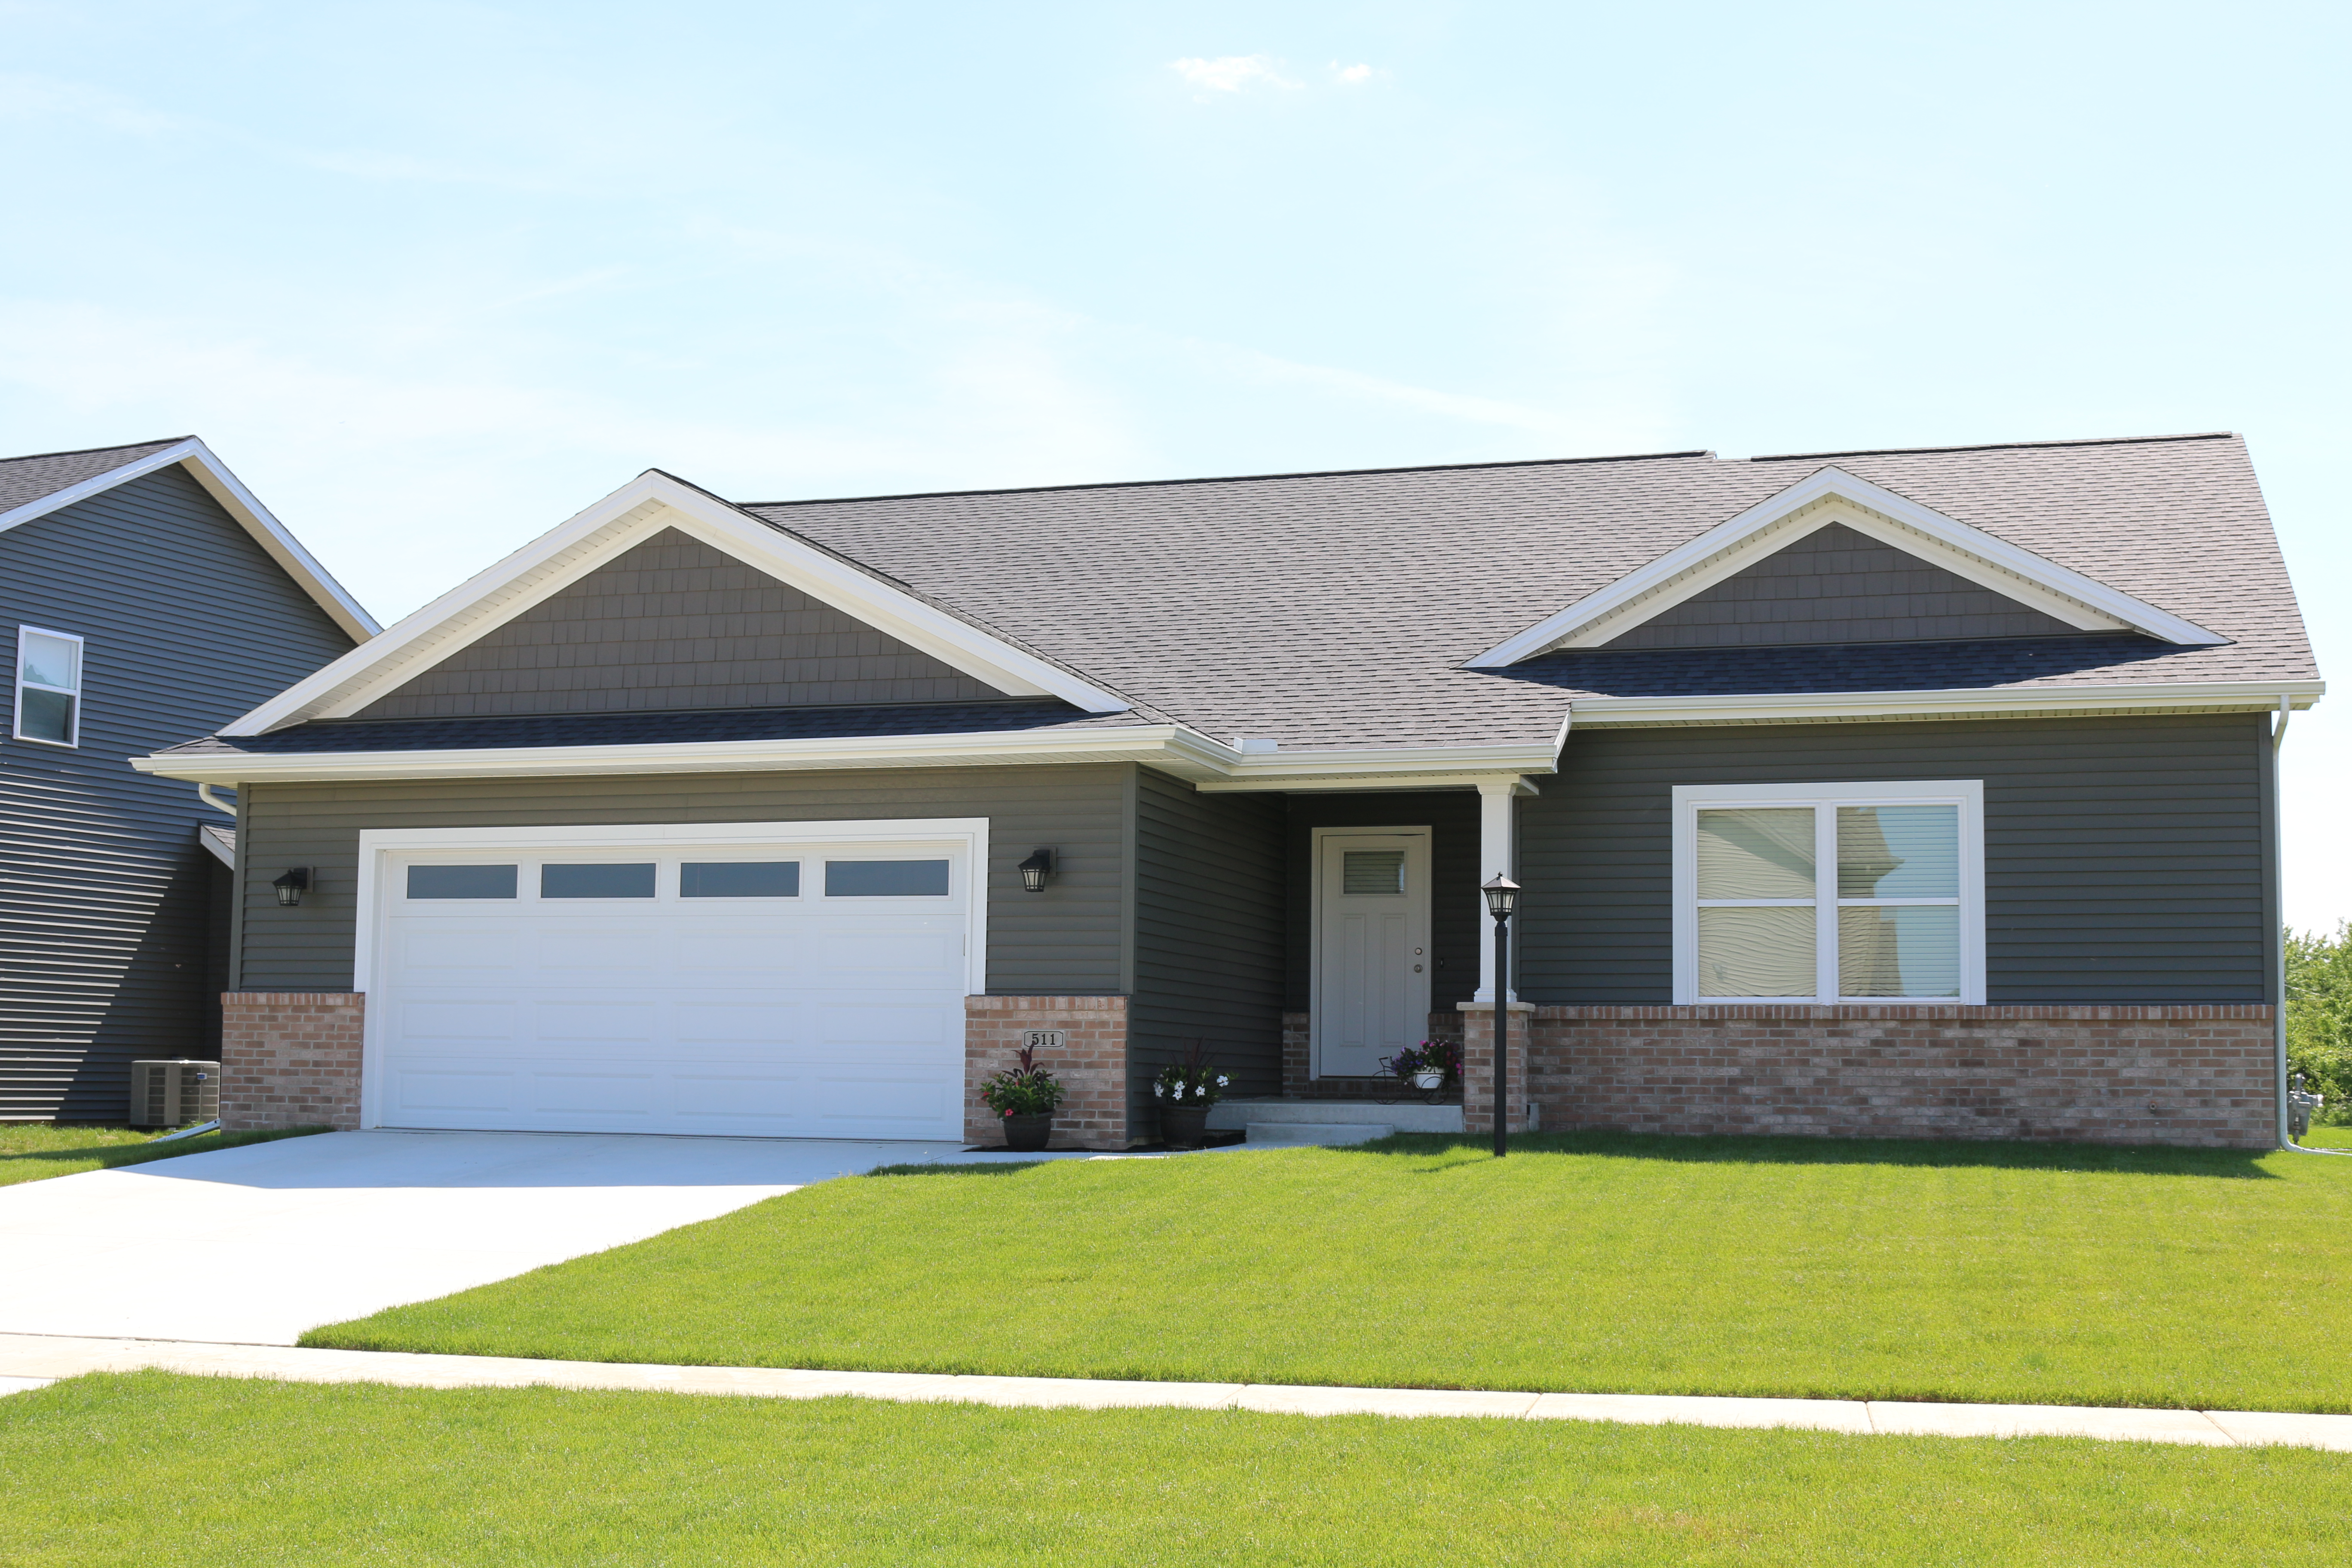 Misty Shadow Dark Grey Siding And Shakes Black Roof With